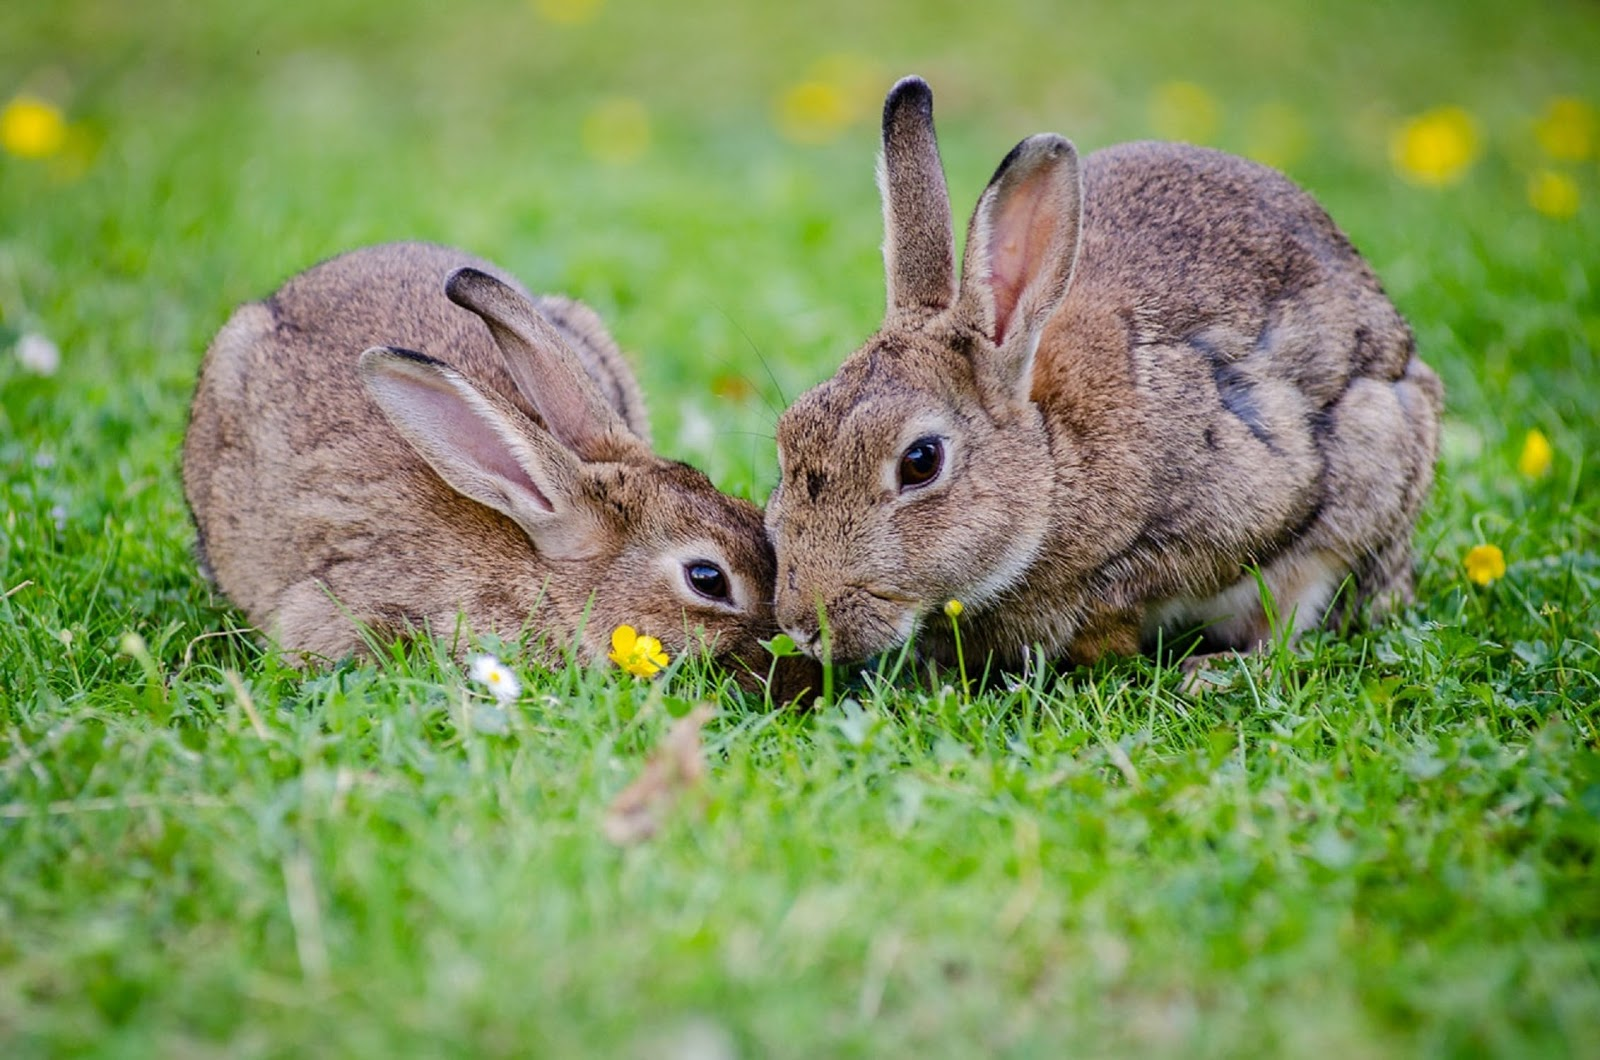 Two rabbits eating grass together